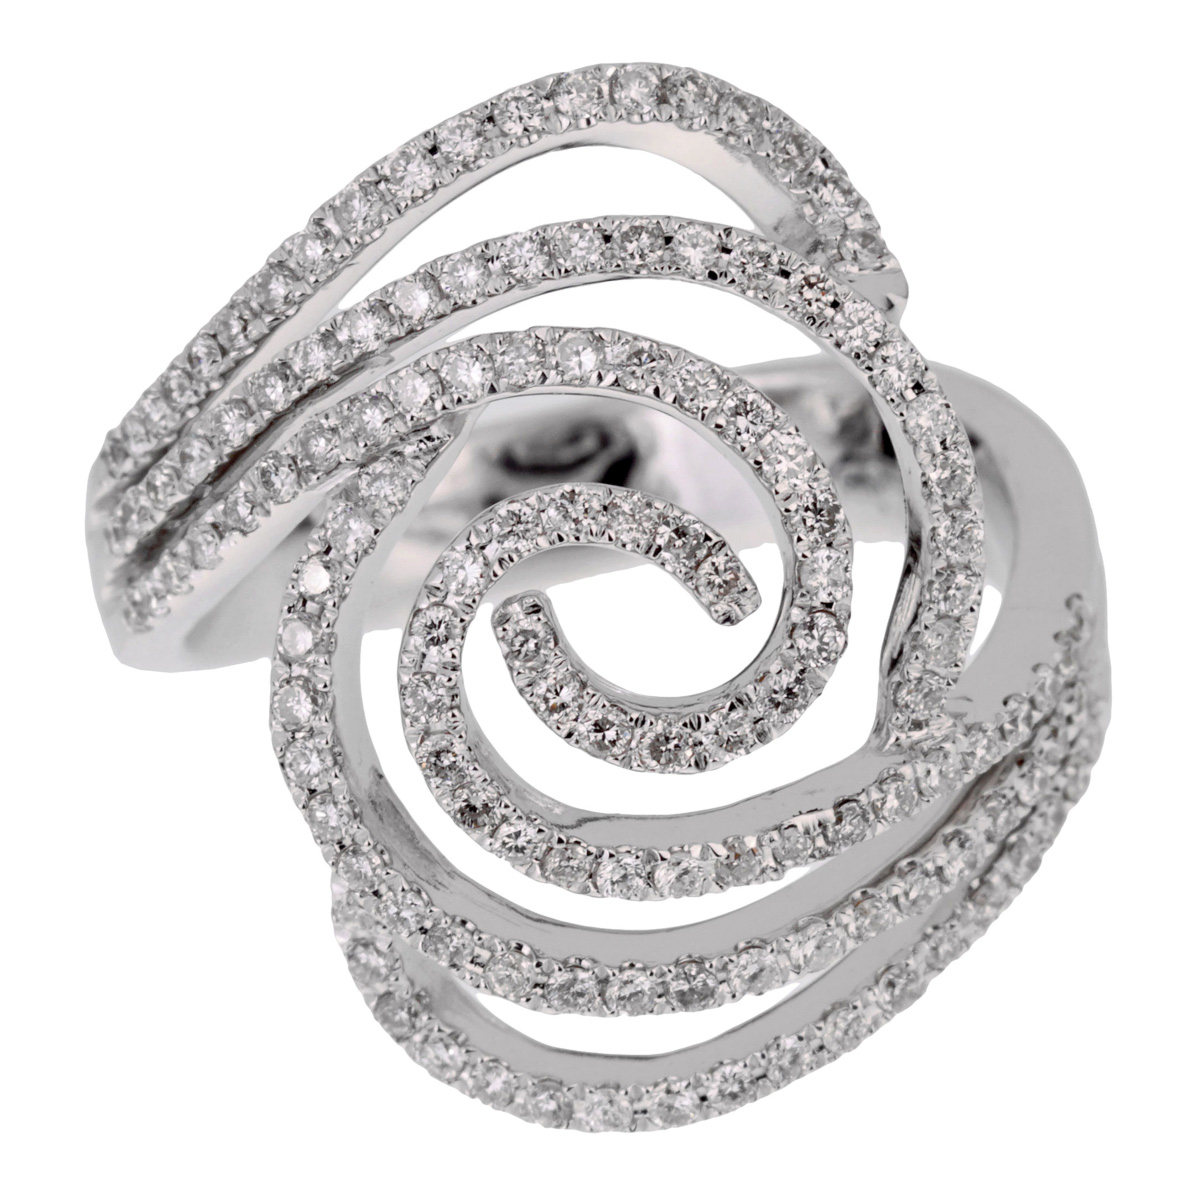 Ladies White Gold Diamond Swirl Cocktail Ring - Estate Jewelry